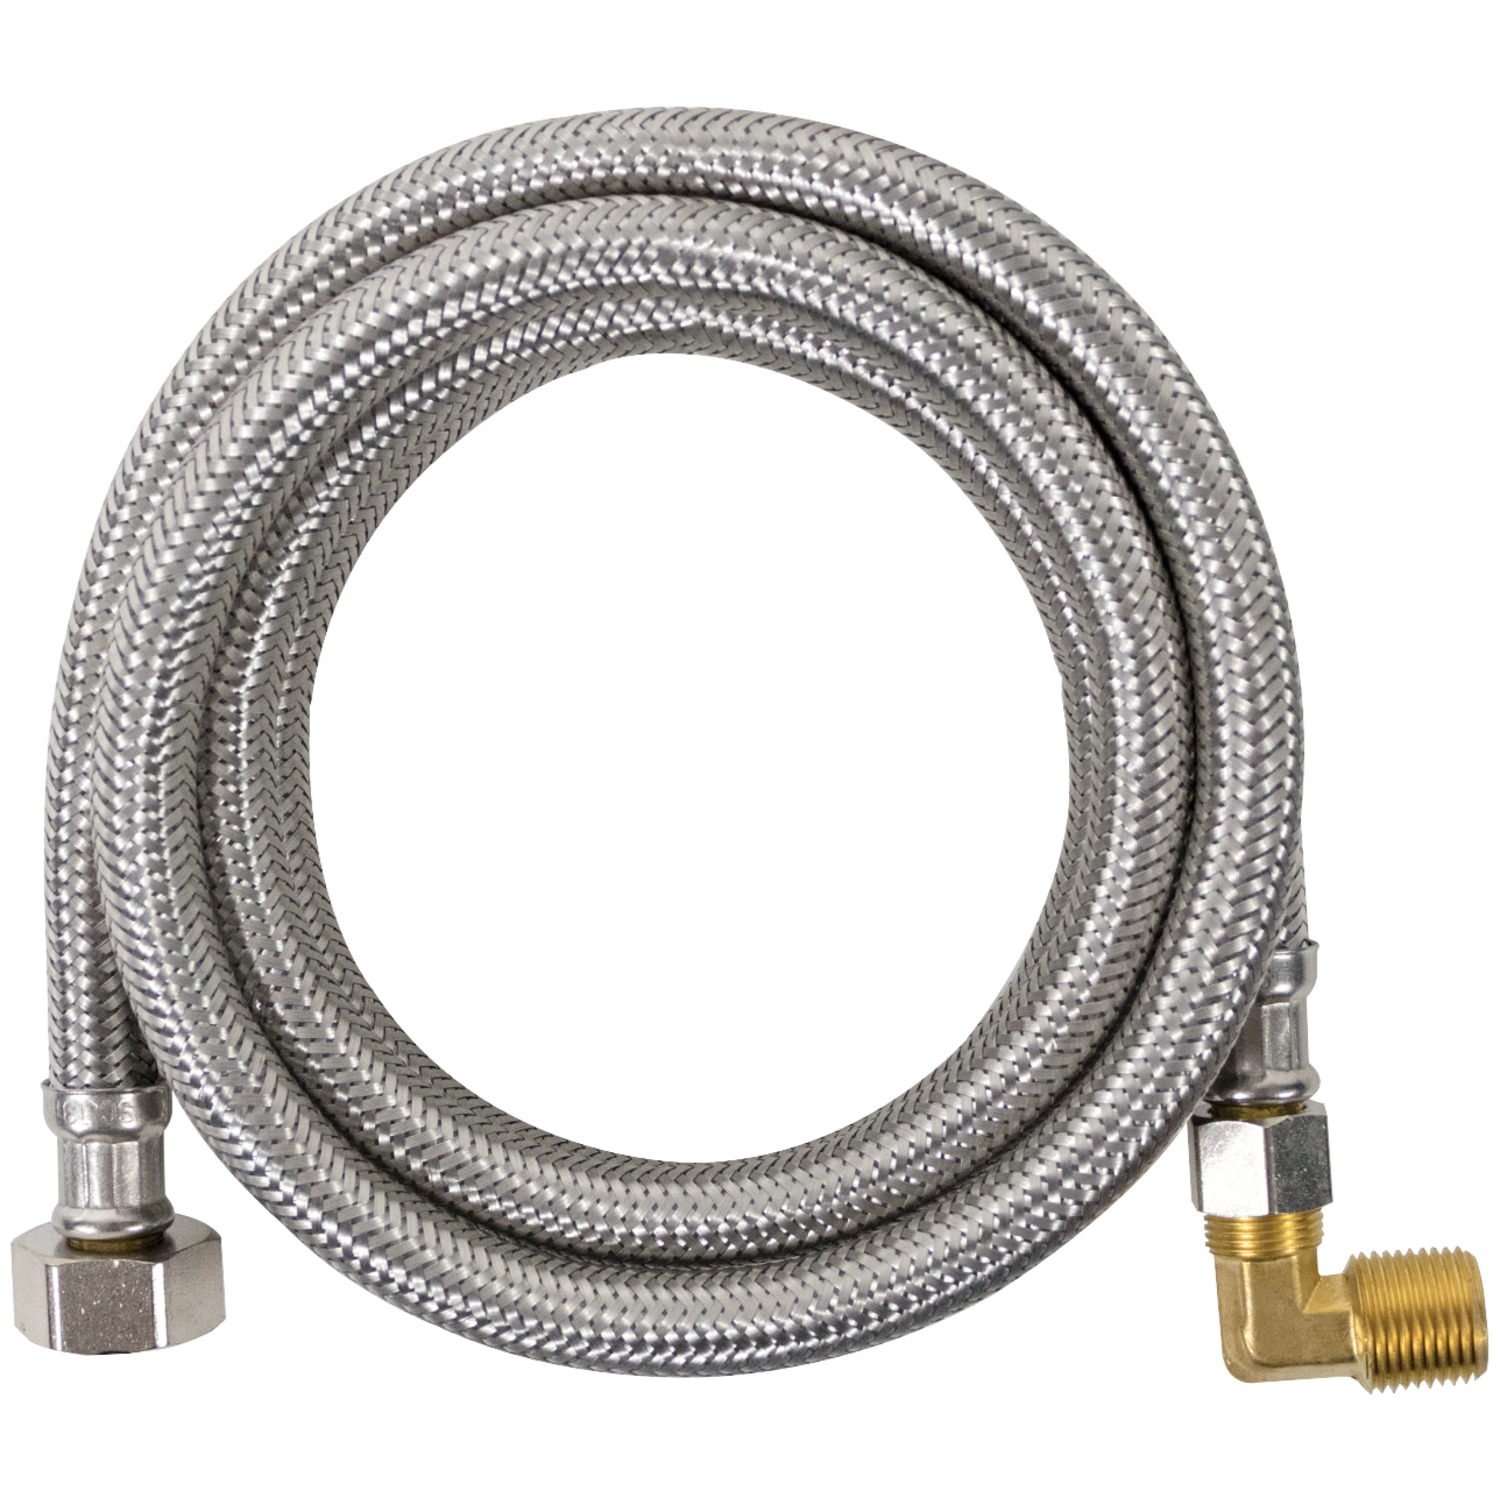 Certified Appliance DW4812SSBL Braided Stainless Steel Dishwasher Connector with Elbow, 4'